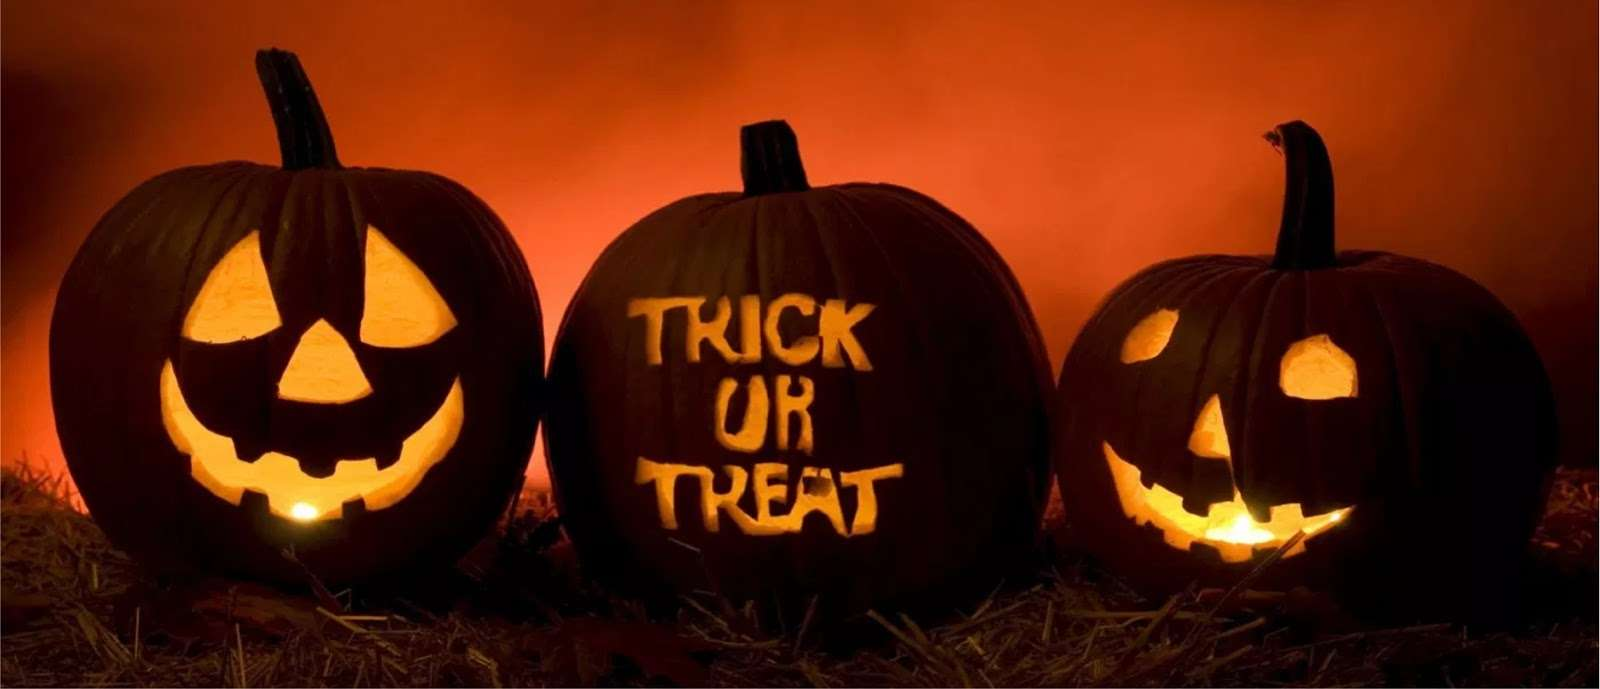 True facts about halloween tradition